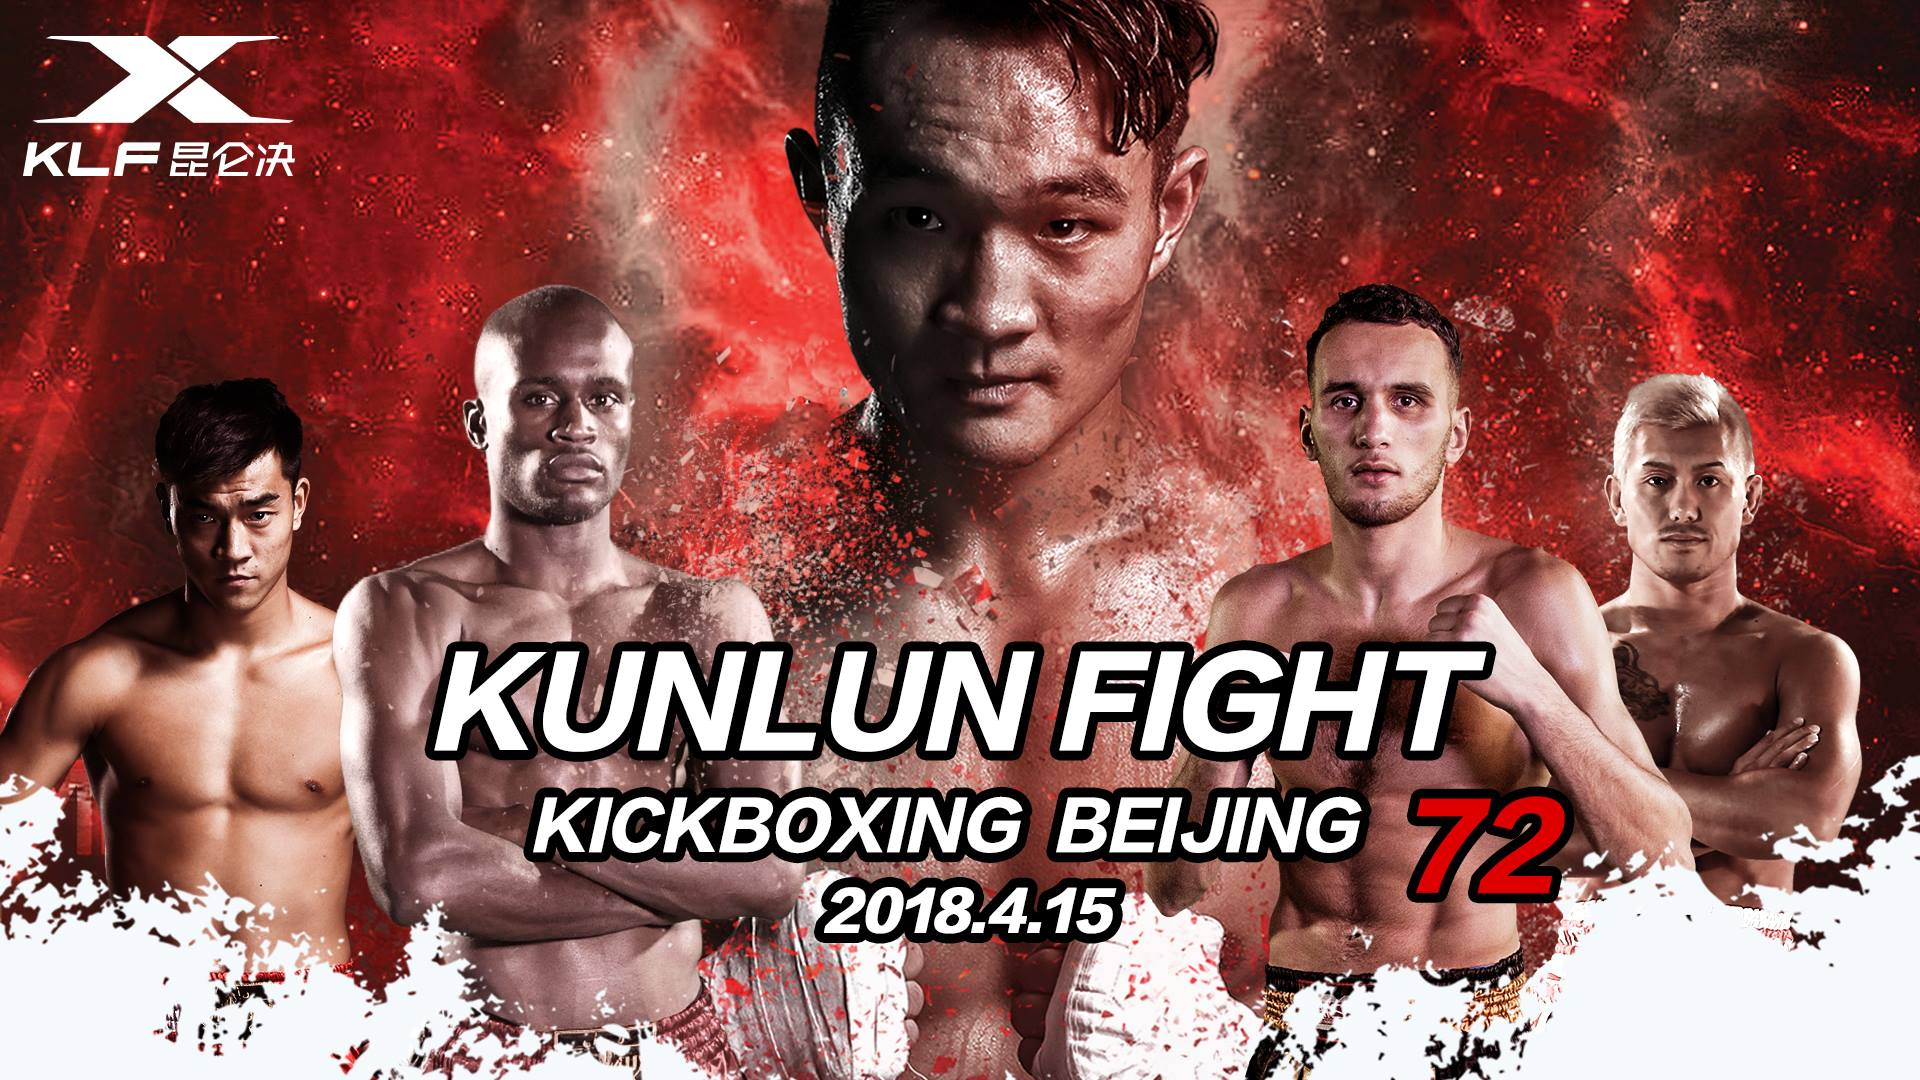 Kunlun Fight 72 Official PPV Live Stream - Watch Sunday, April 15 at 7 a.m. EST